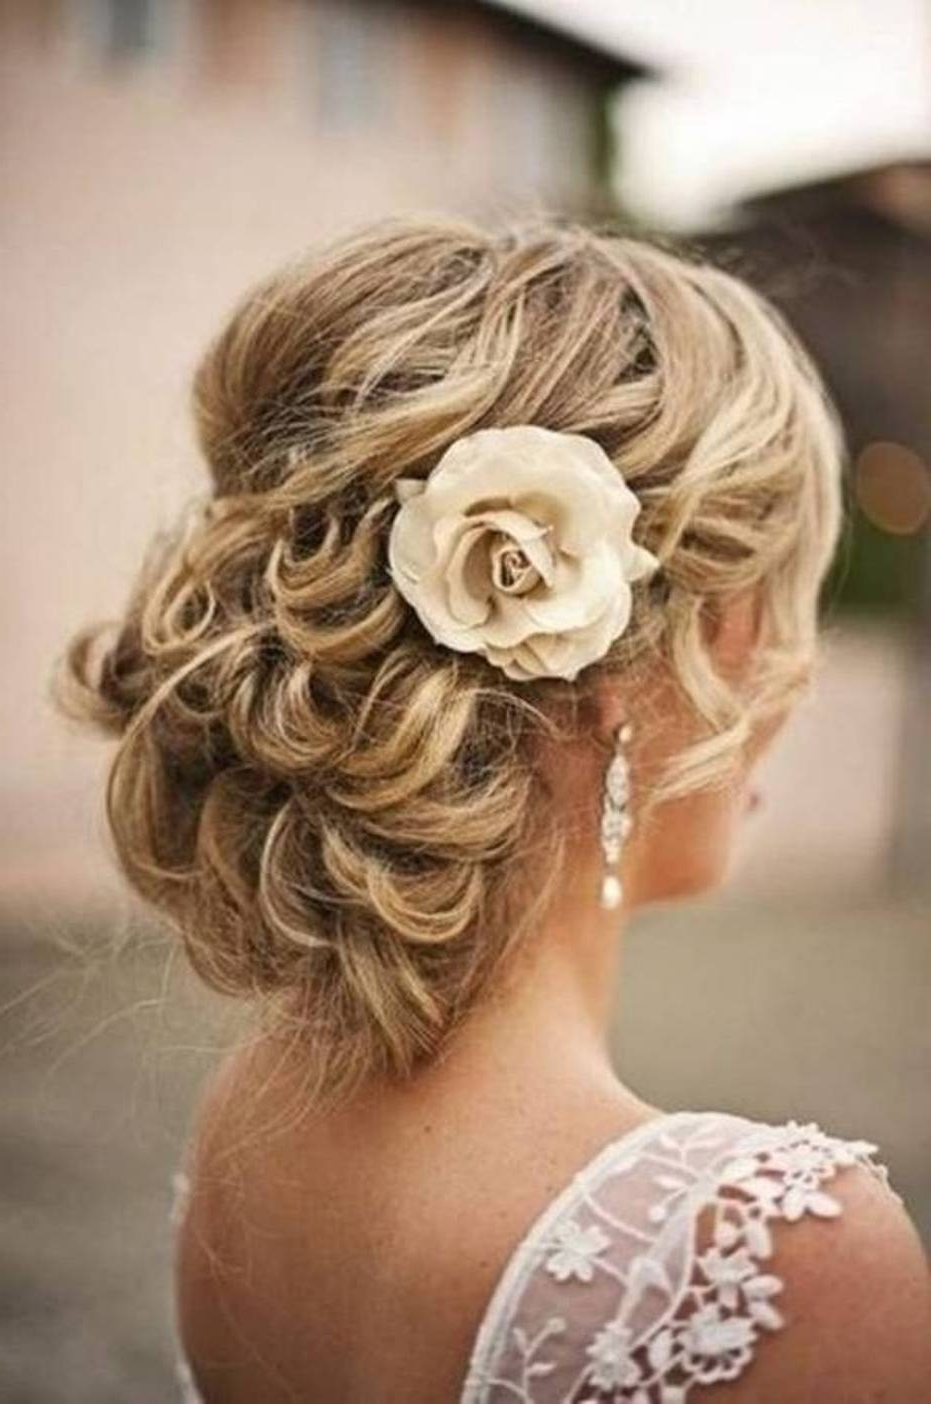 Wedding Hairstyles Ideas: Side Ponytail High Updo Hairstyles For Inside Messy Updo Hairstyles For Wedding (View 5 of 15)